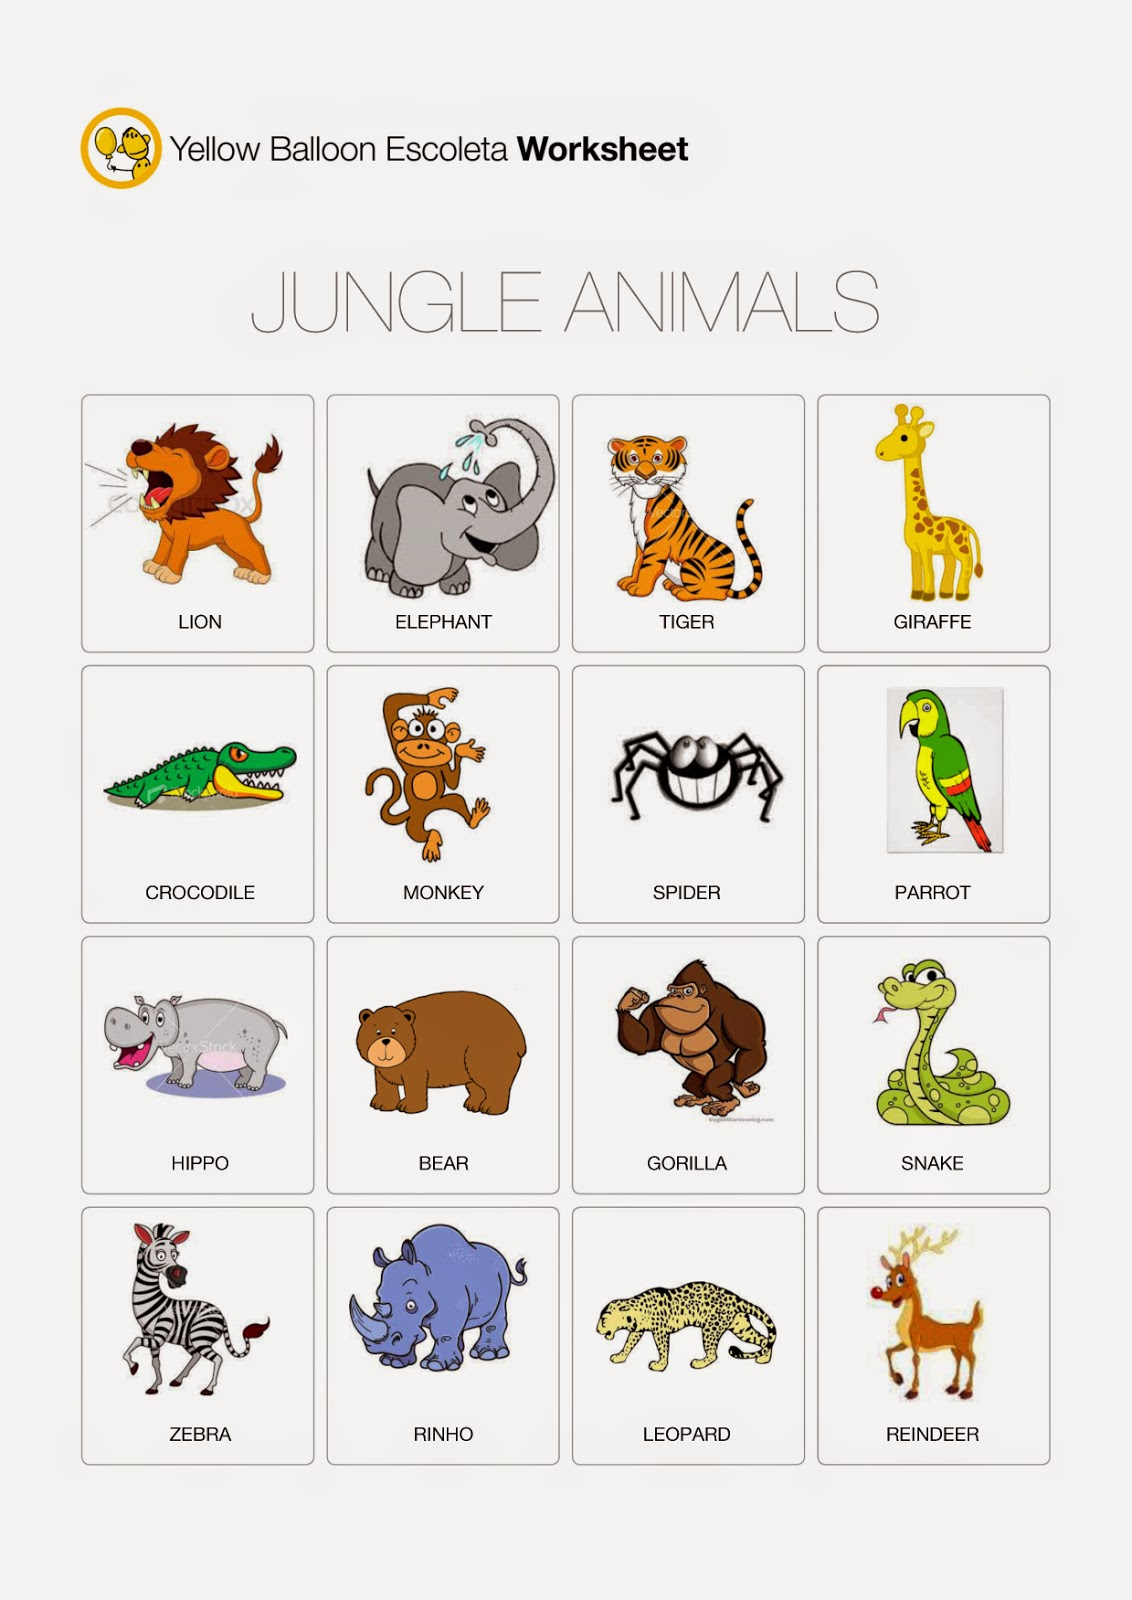 Yellow Balloon Escoleta Jungle Animals Worksheet